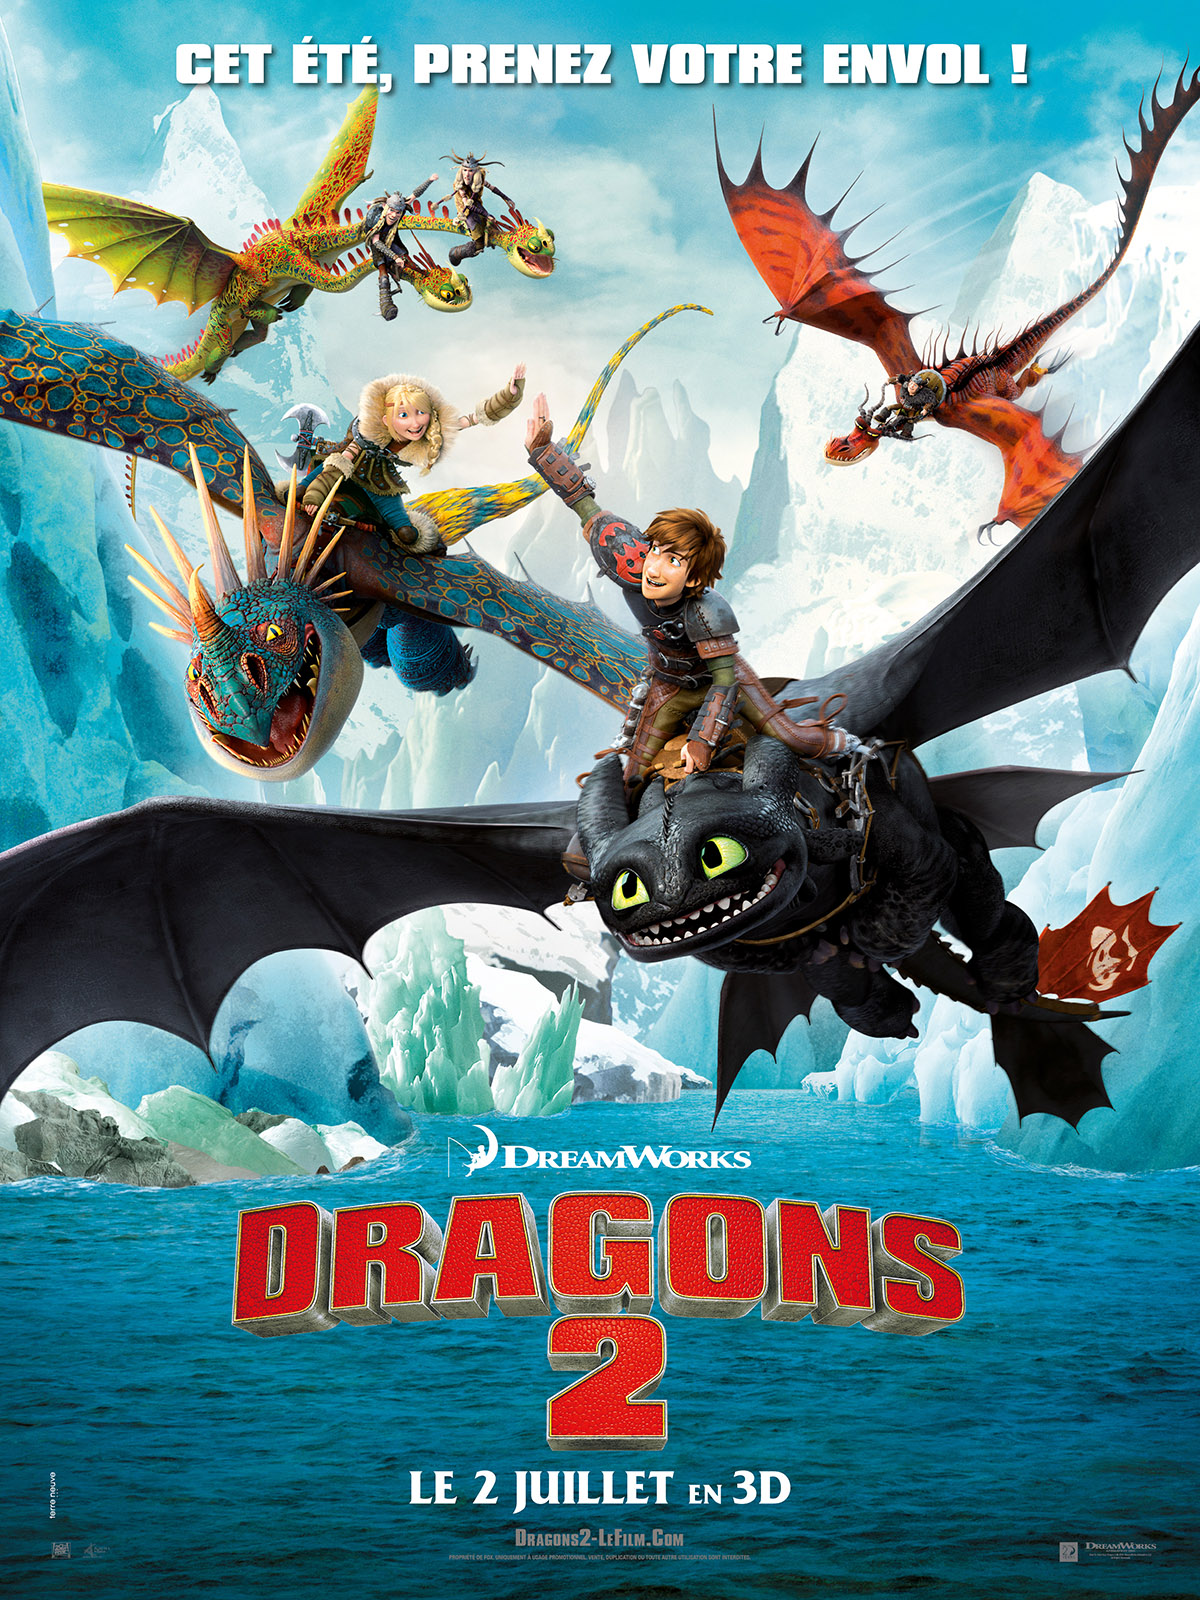 Dragons 2 [TS.MD] dvdrip